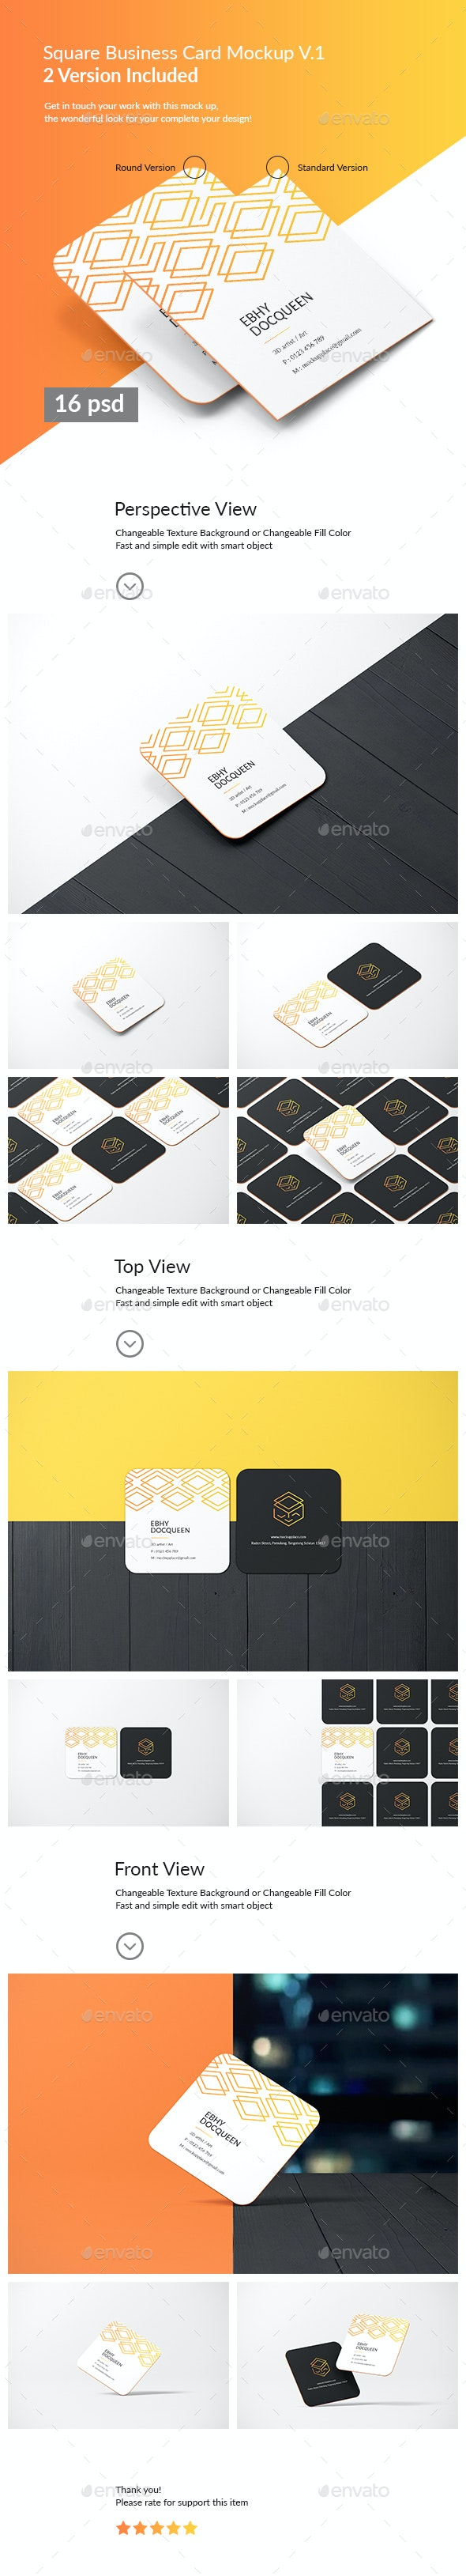 Square Business Card Mockup - Product Mock-Ups Graphics